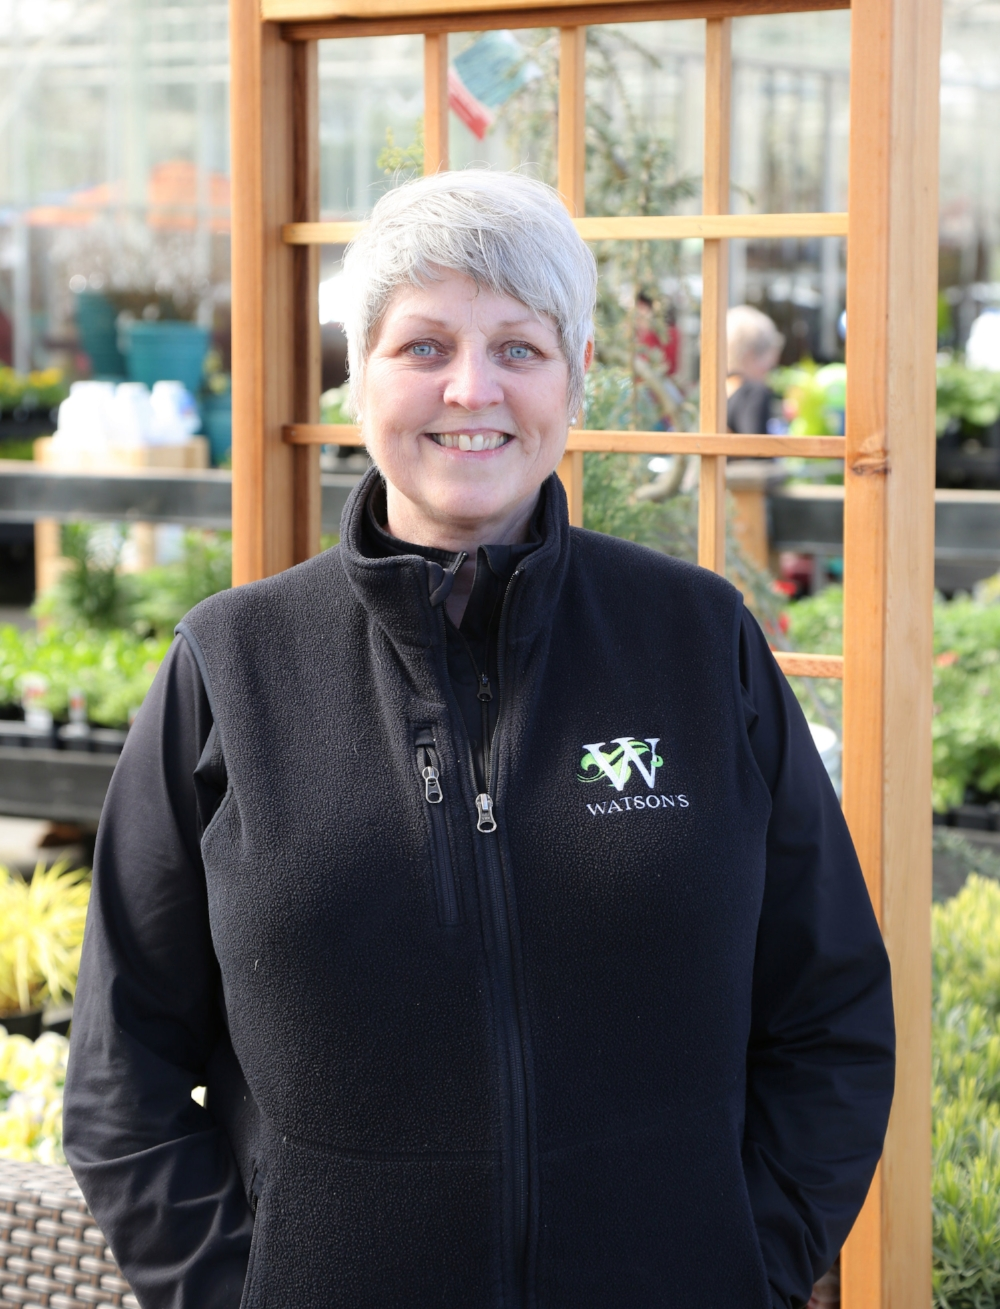 Jacky Fausset - Landscape Designer, Certified Vocational Horticulture Educator and Garden Coach, has over 25 years of landscape design, plant knowledge, and personal gardening experience. Jacky has been awarded medals at the Northwest Flower and Garden Show, been interviewed by several national publications and served on downtown beautification and urban forestry committees in Washington and Oregon.